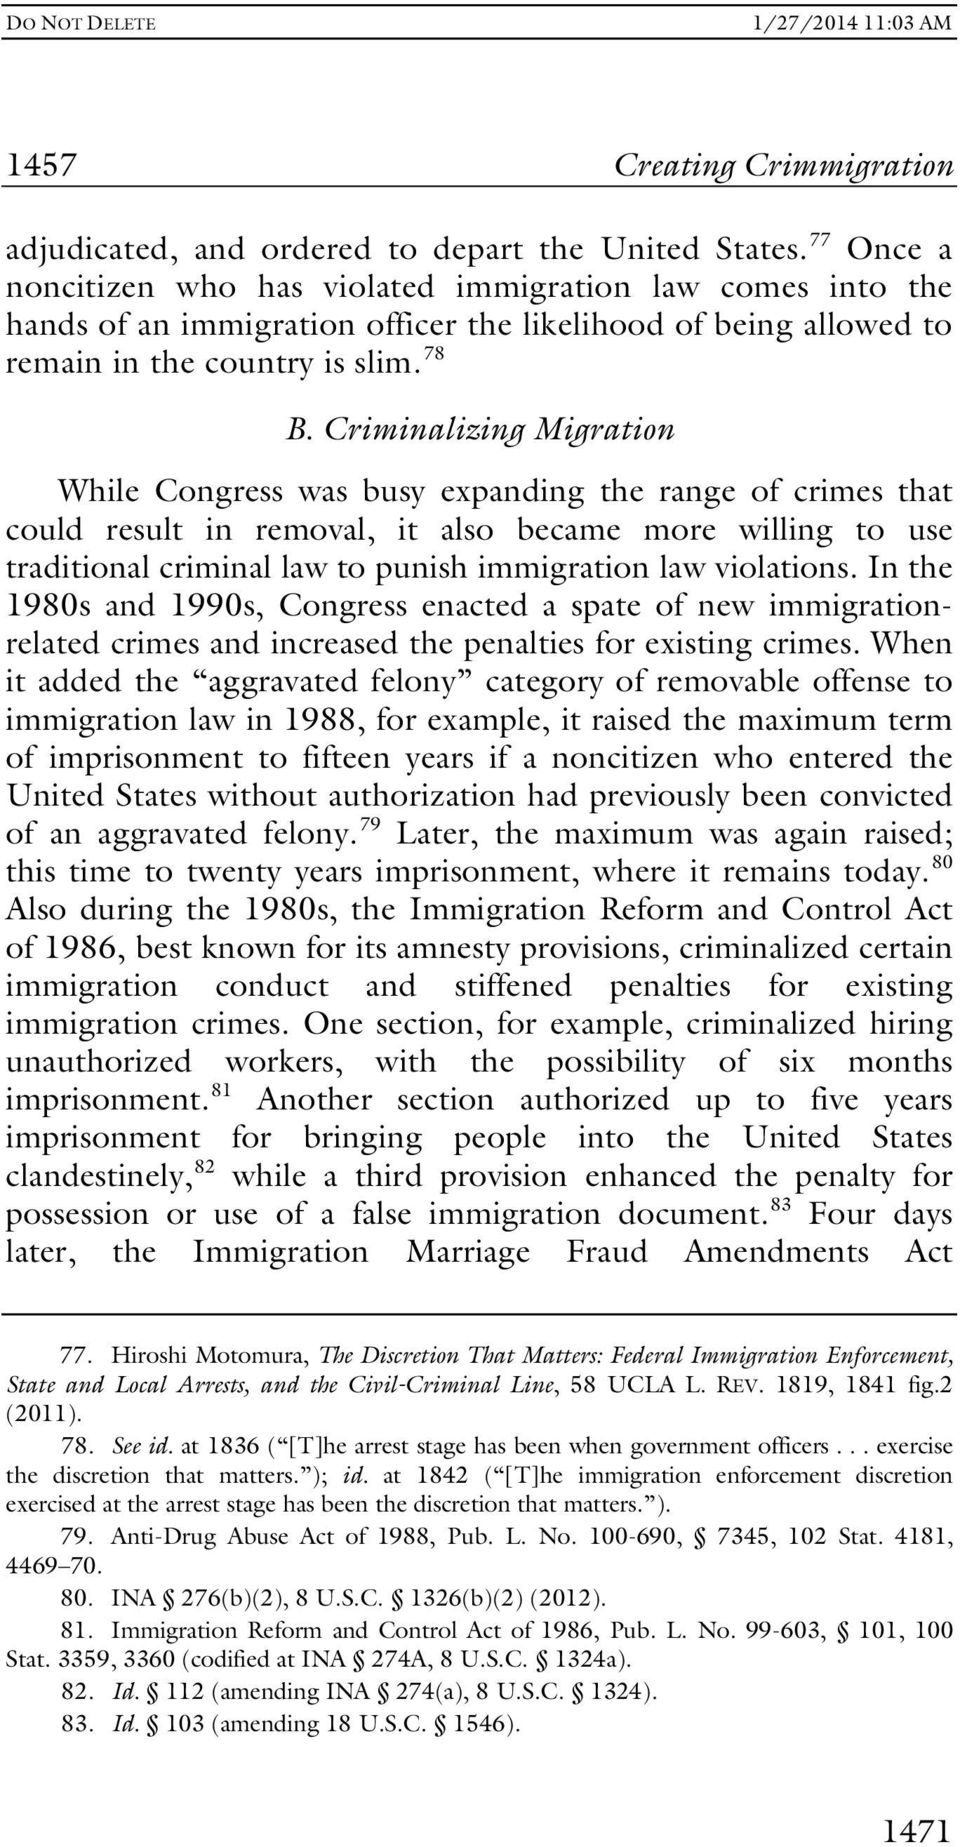 Criminalizing Migration While Congress was busy expanding the range of crimes that could result in removal, it also became more willing to use traditional criminal law to punish immigration law